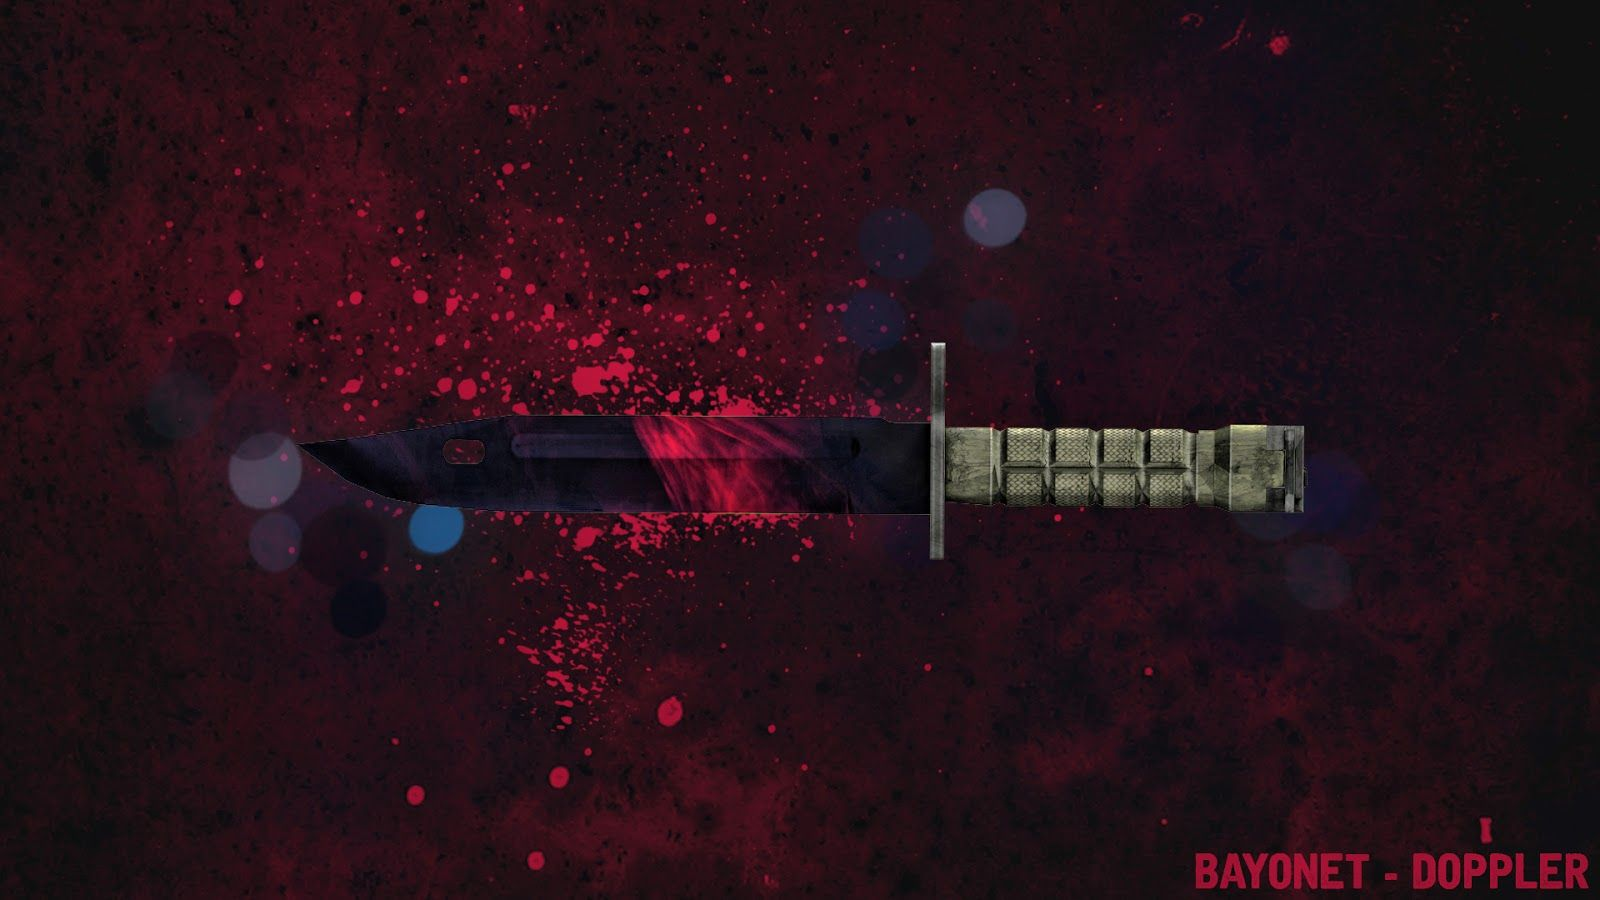 Cs Go Knife Skin Wallpaper 1600x900 Go Wallpaper Wallpaper Wallpaper Cs Go